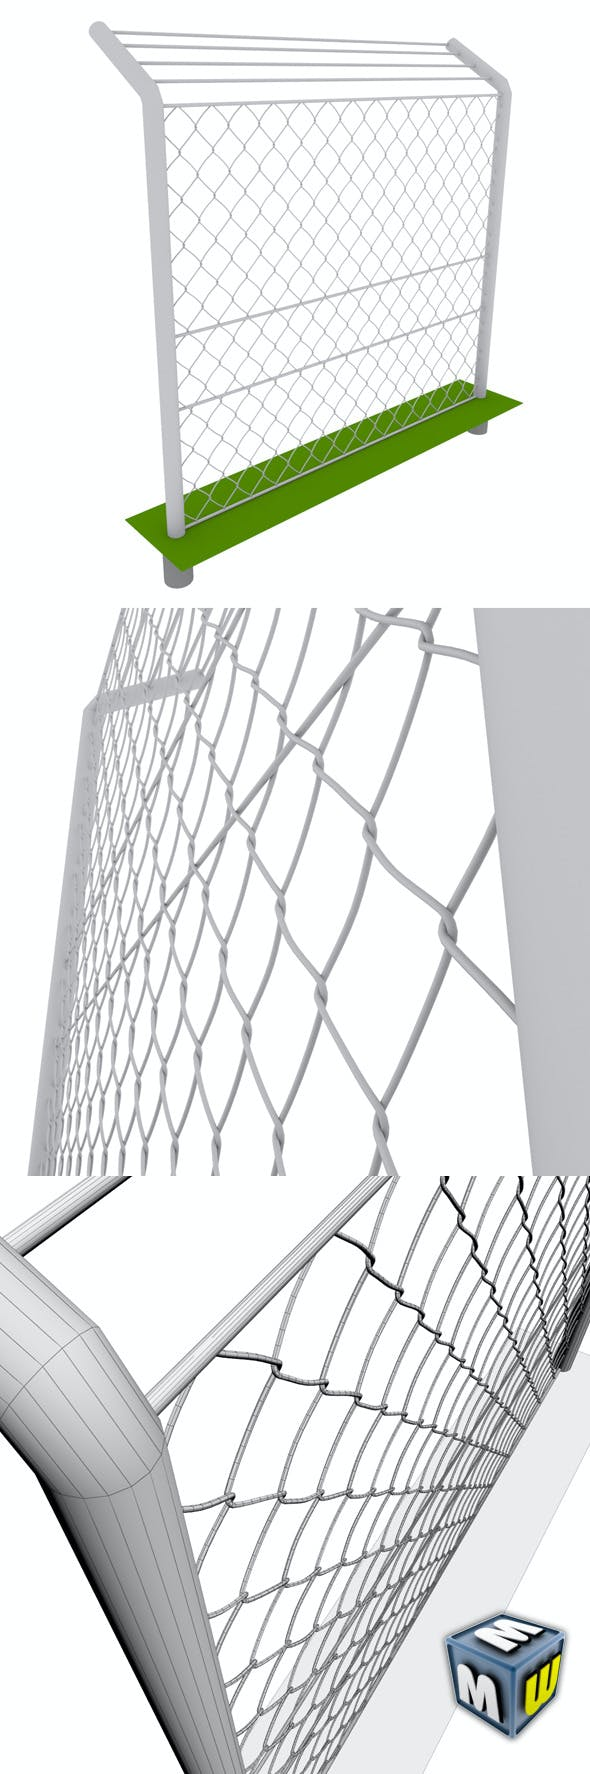 Mesh_Fence max 2010 - 3DOcean Item for Sale